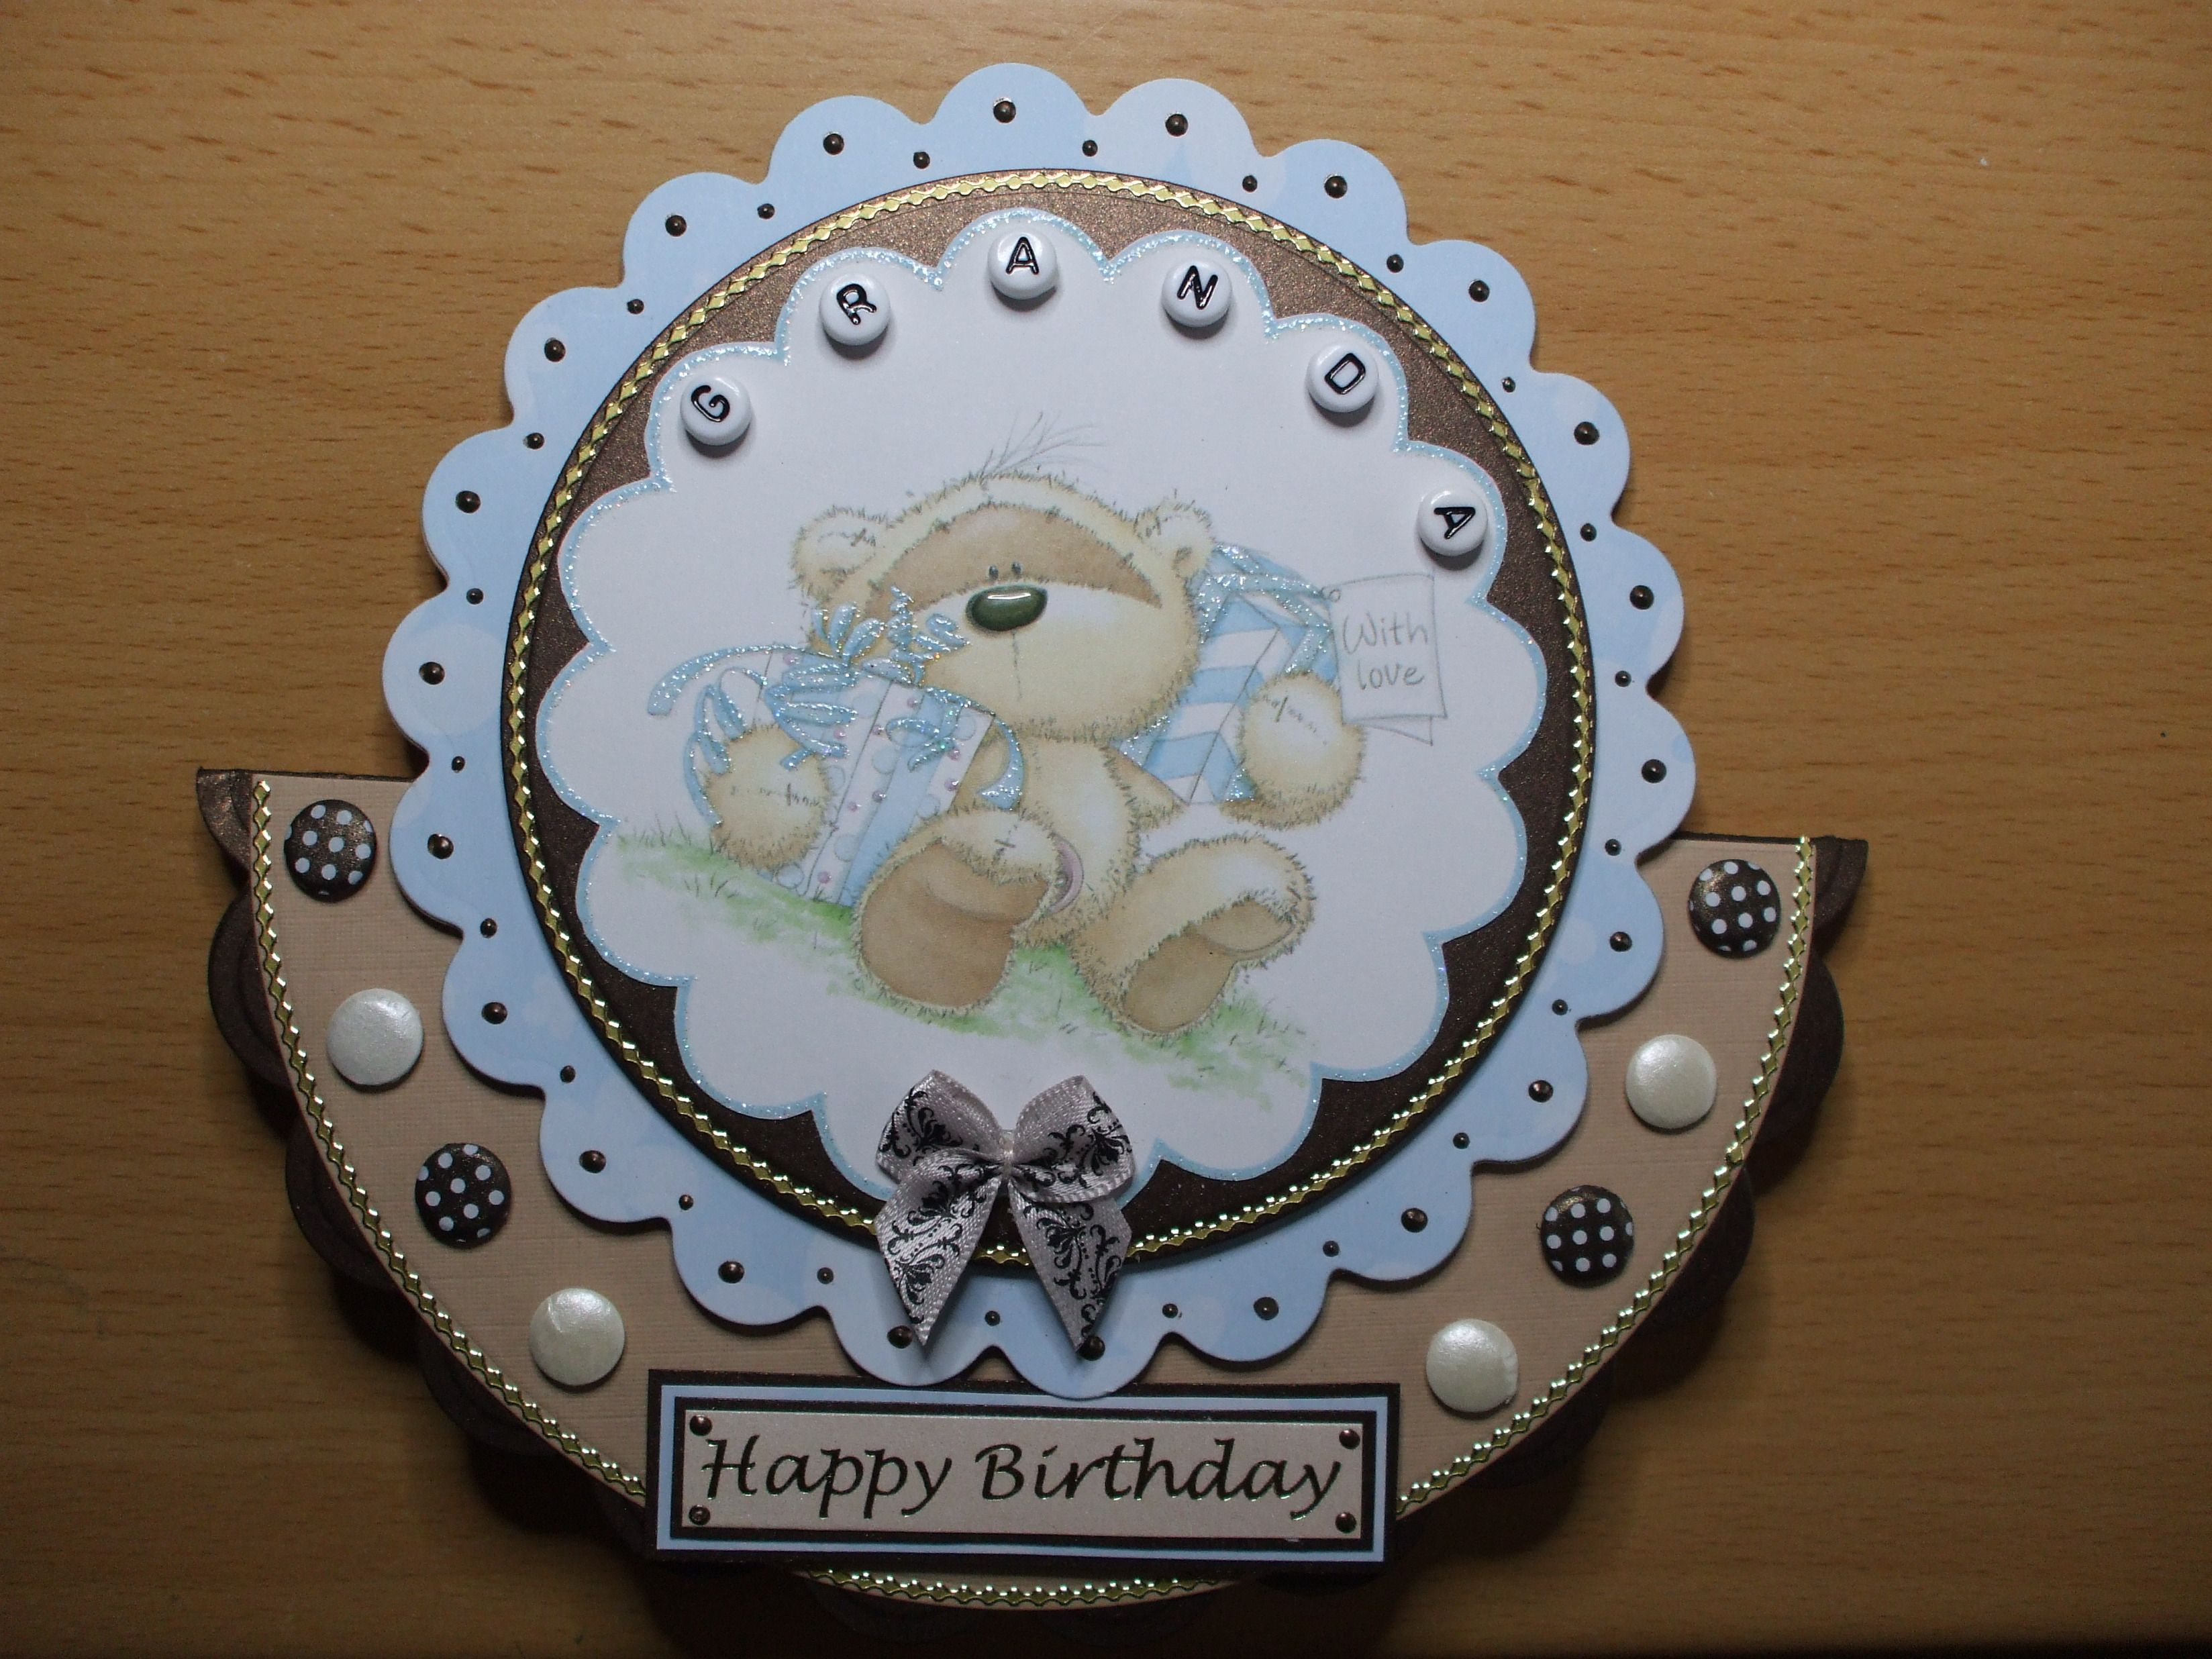 Pin By Lou Wronski On My Handmade Cards Candles And Keepsakes Baby Cards Handmade Fun Fold Cards Shaped Cards